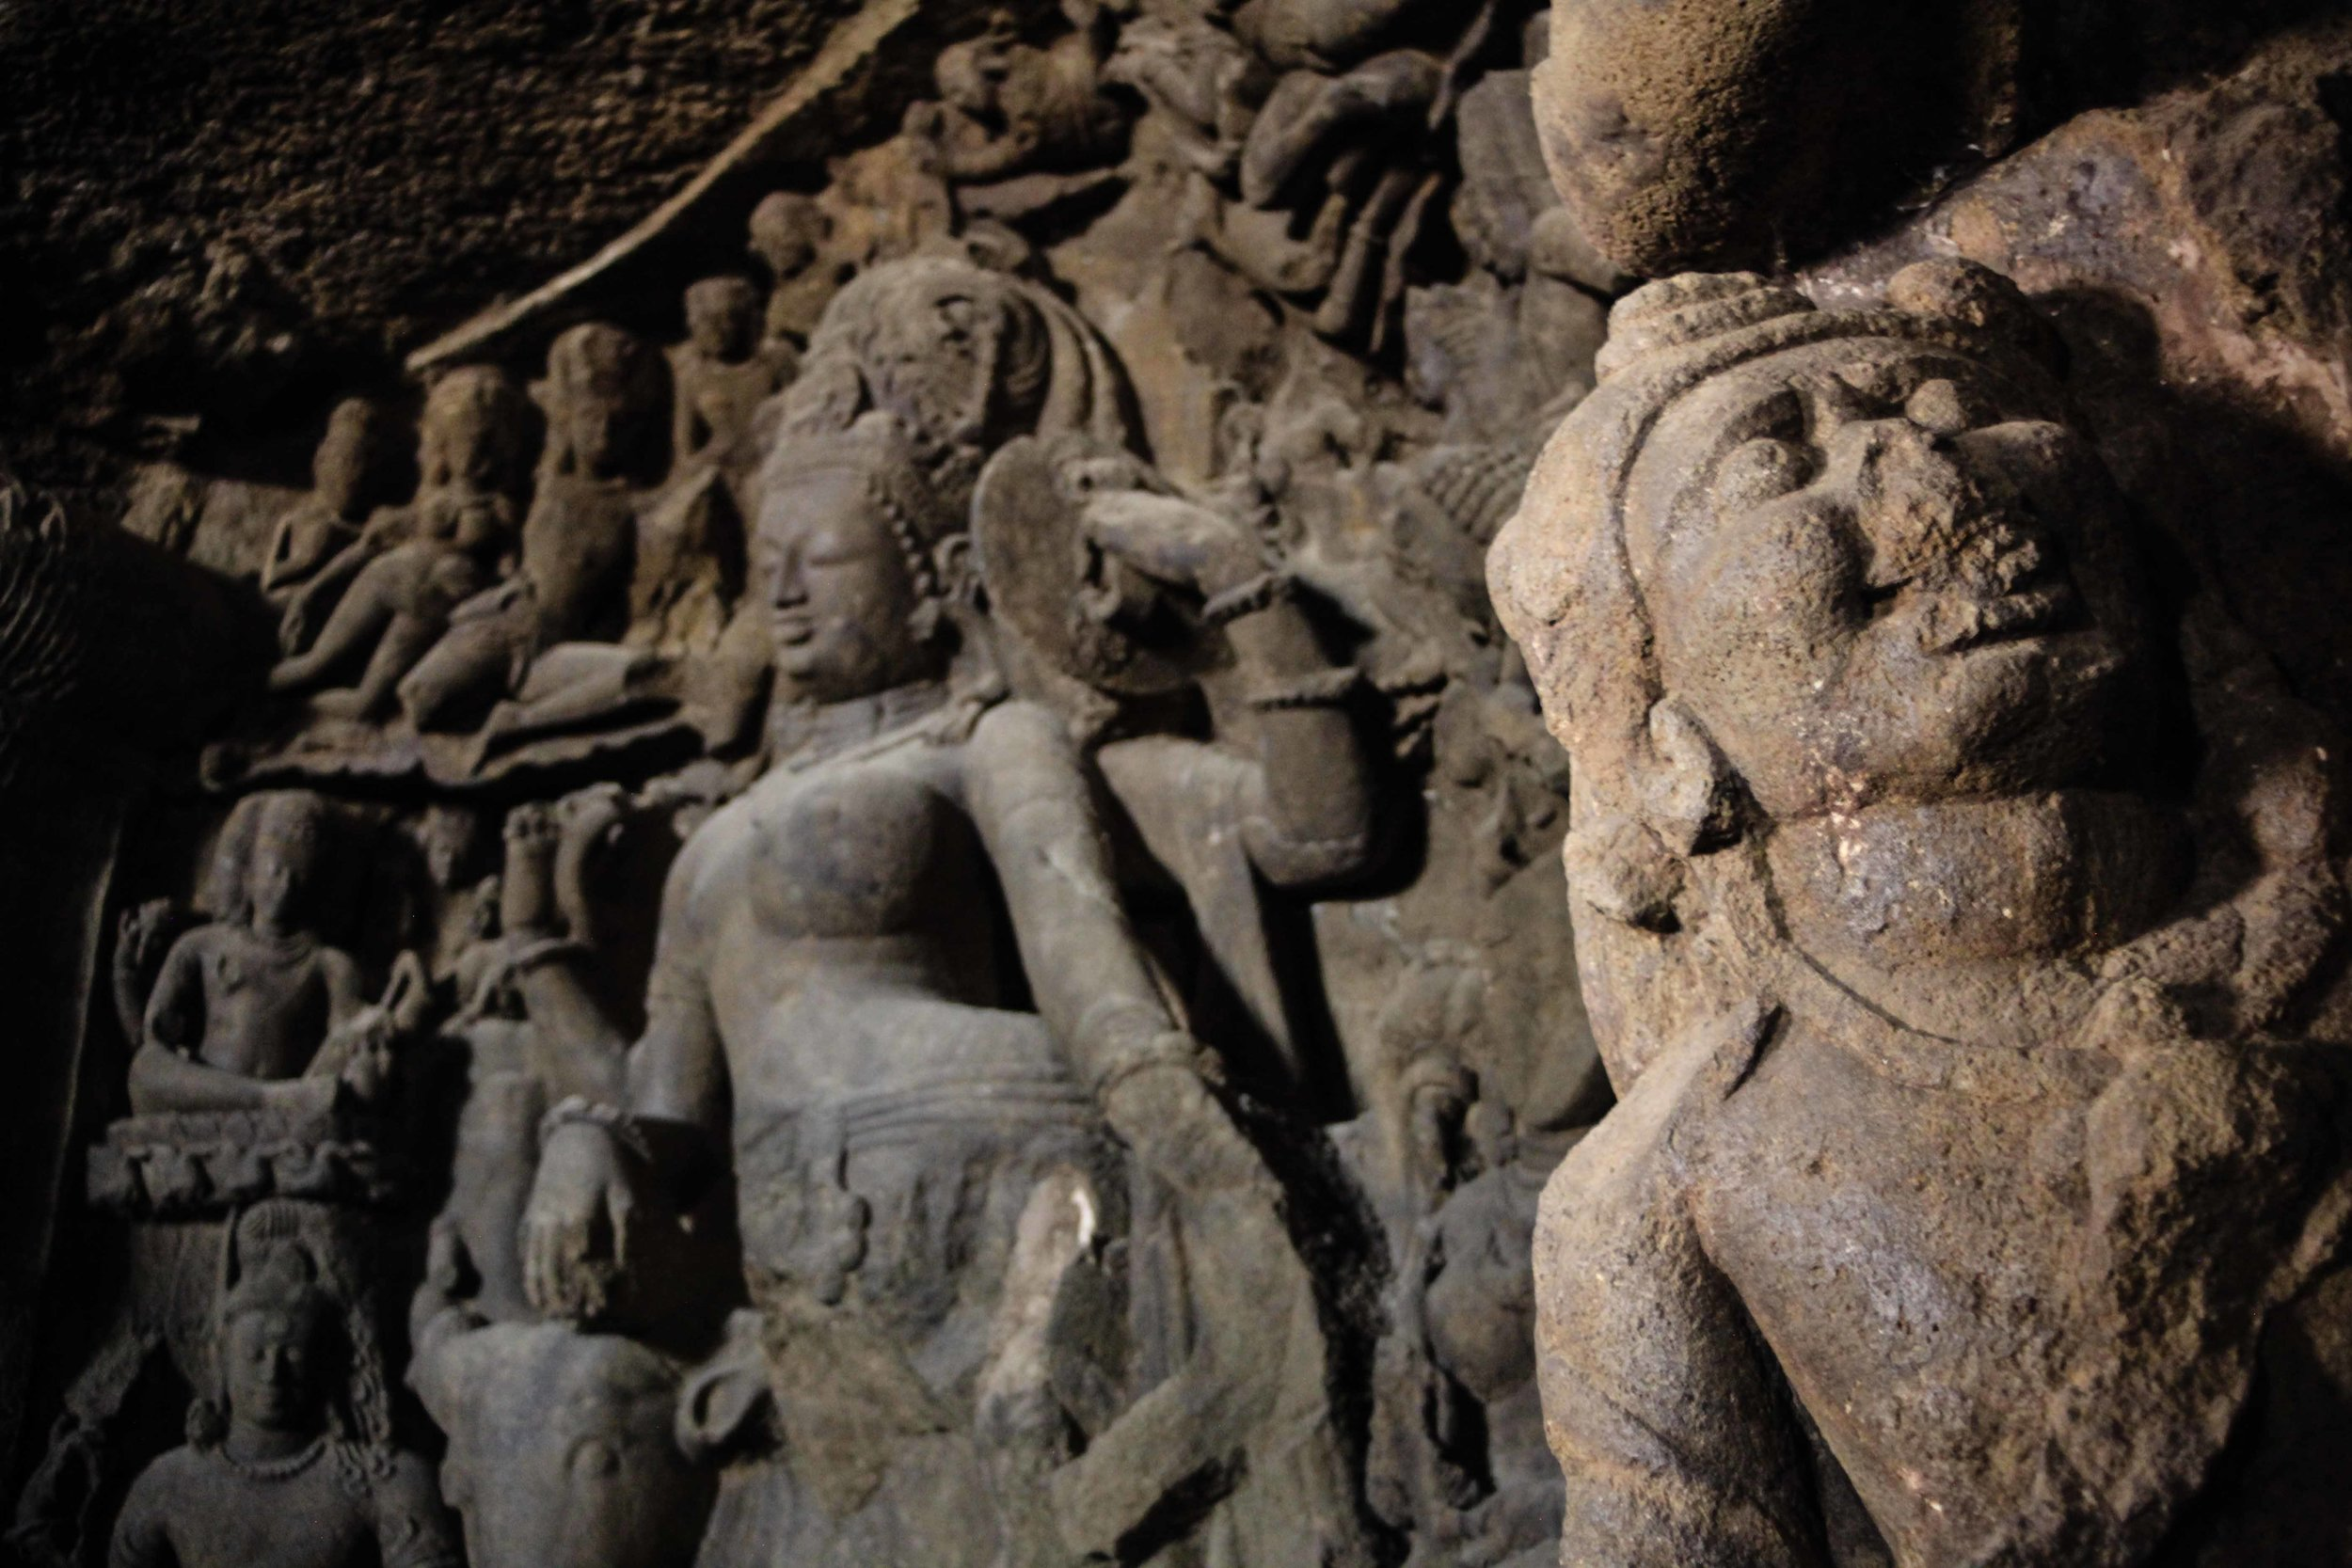 The amazing statues inside the caves at Elephanta Island